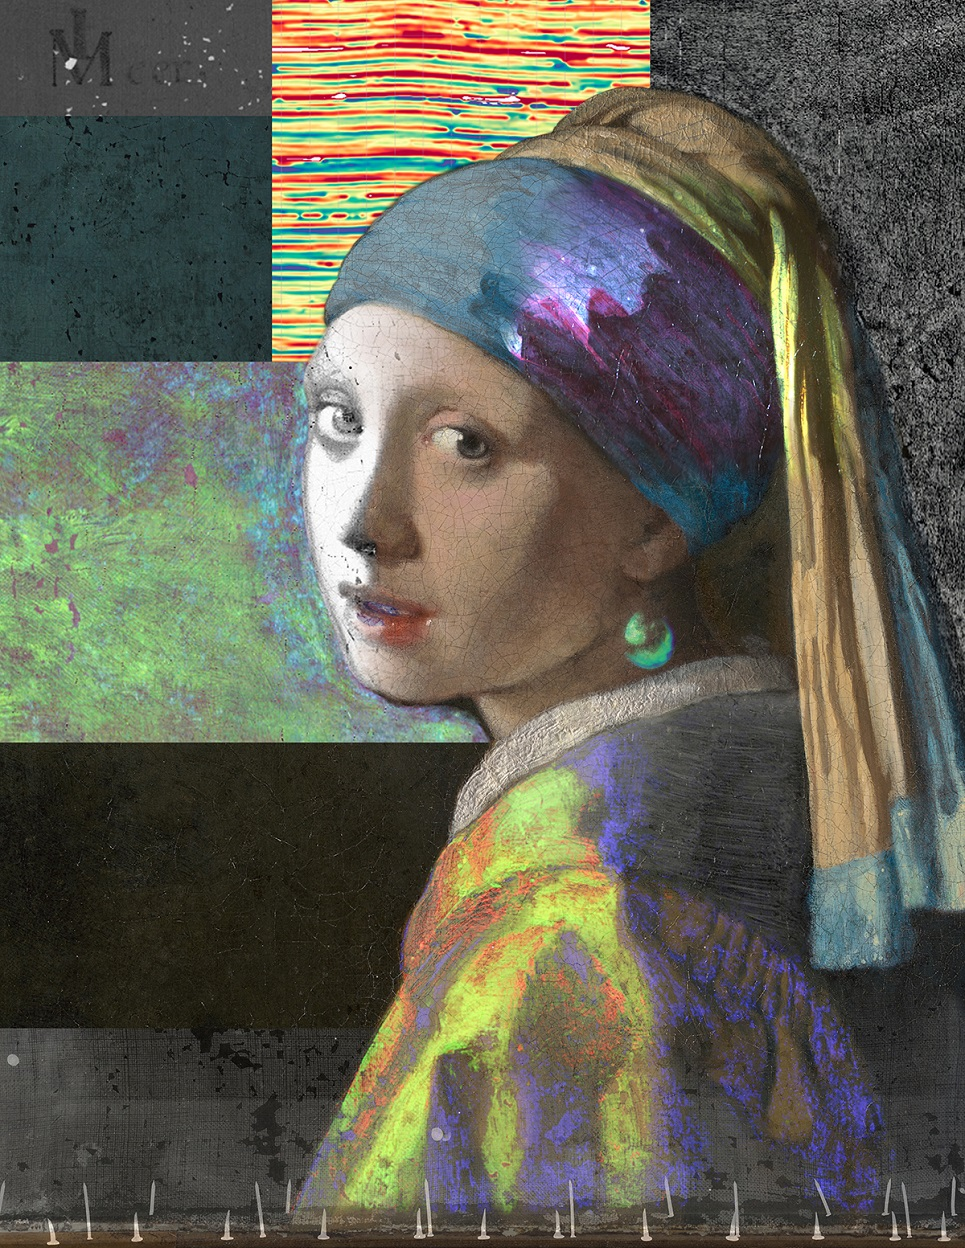 Composite image of Girl with a Pearl Earring from images made during the Girl in the Spotlight project. [Sylvain Fleur and the Girl in the Spotlight team]